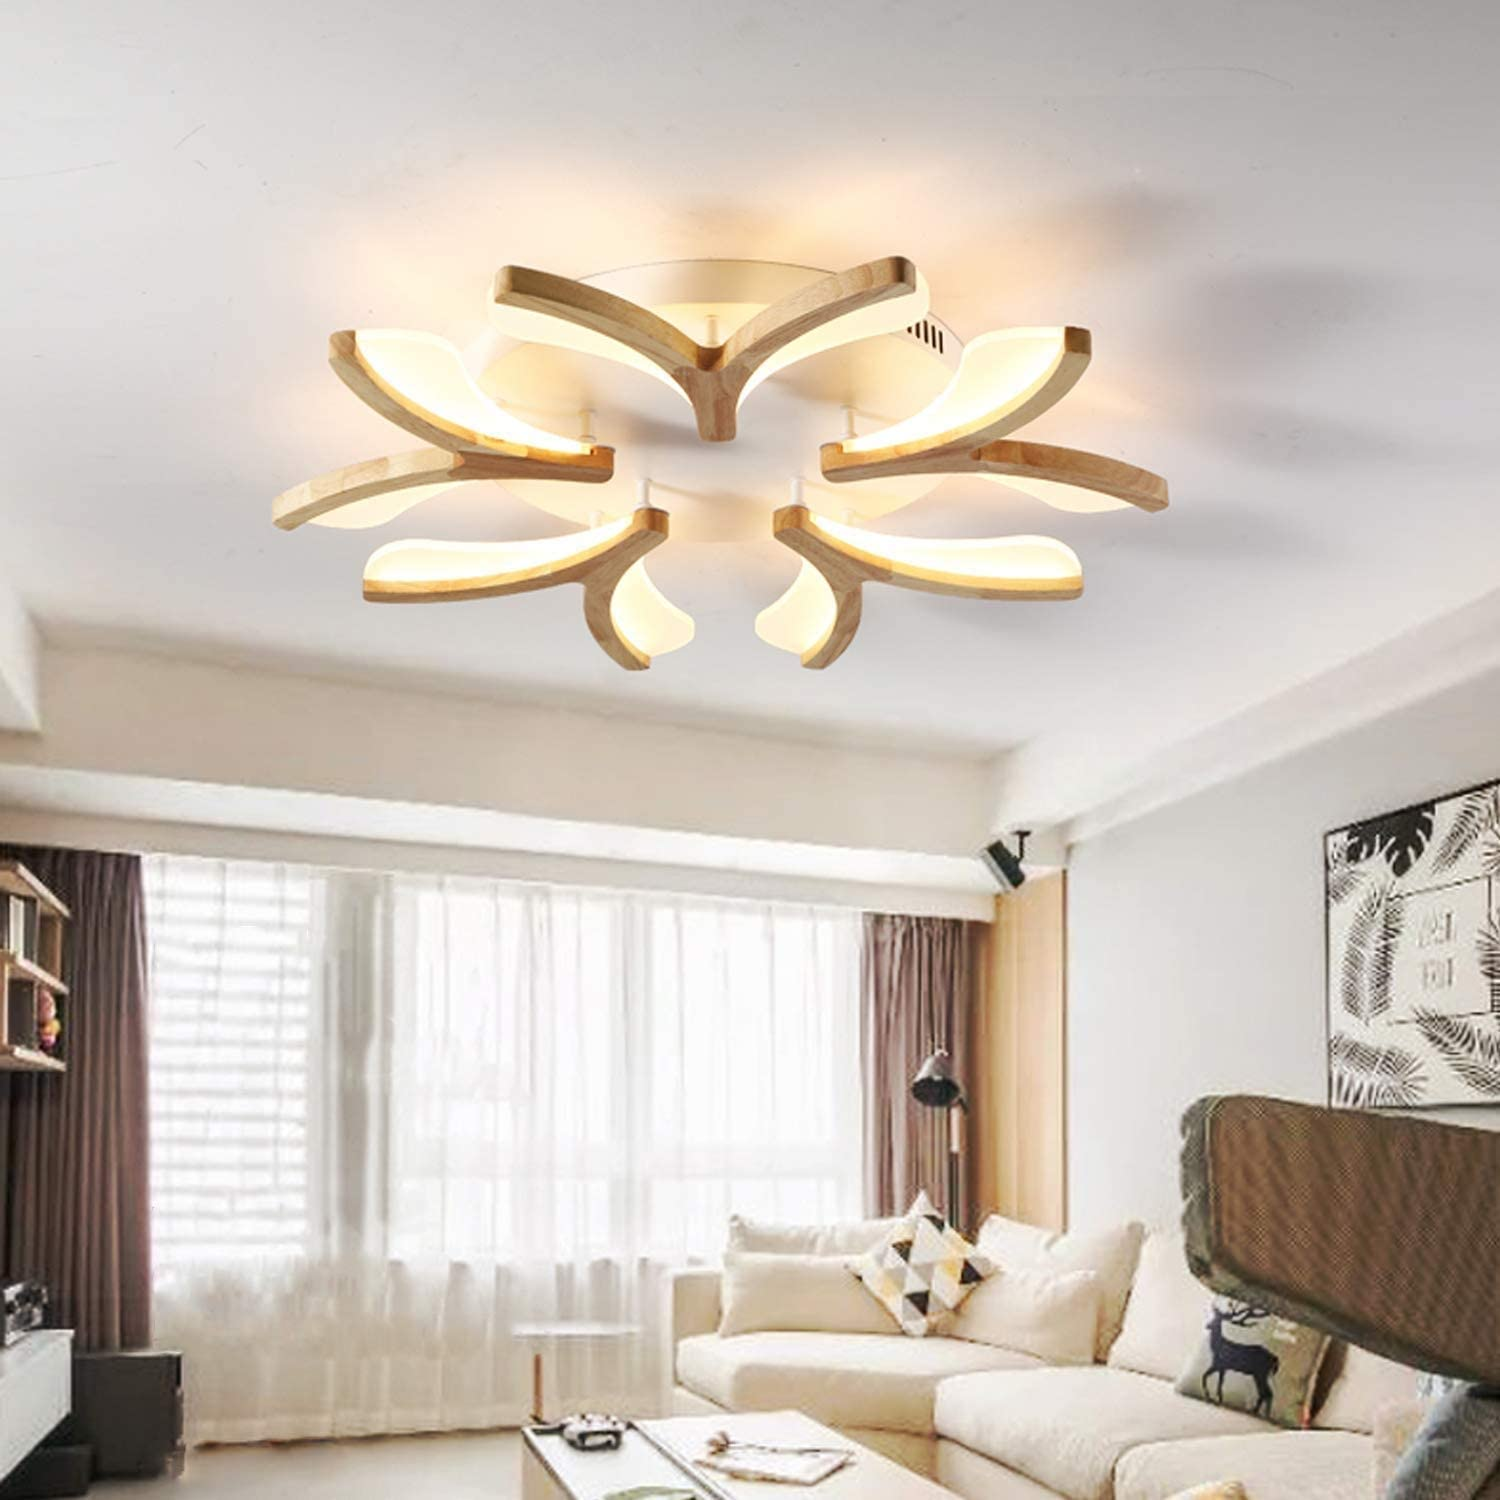 Amazon Com Wd Chandelier Wood Living Room Lights Led Ceiling Lamp Simple Modern Wood Bedroom Lamp Study Home Kitchen